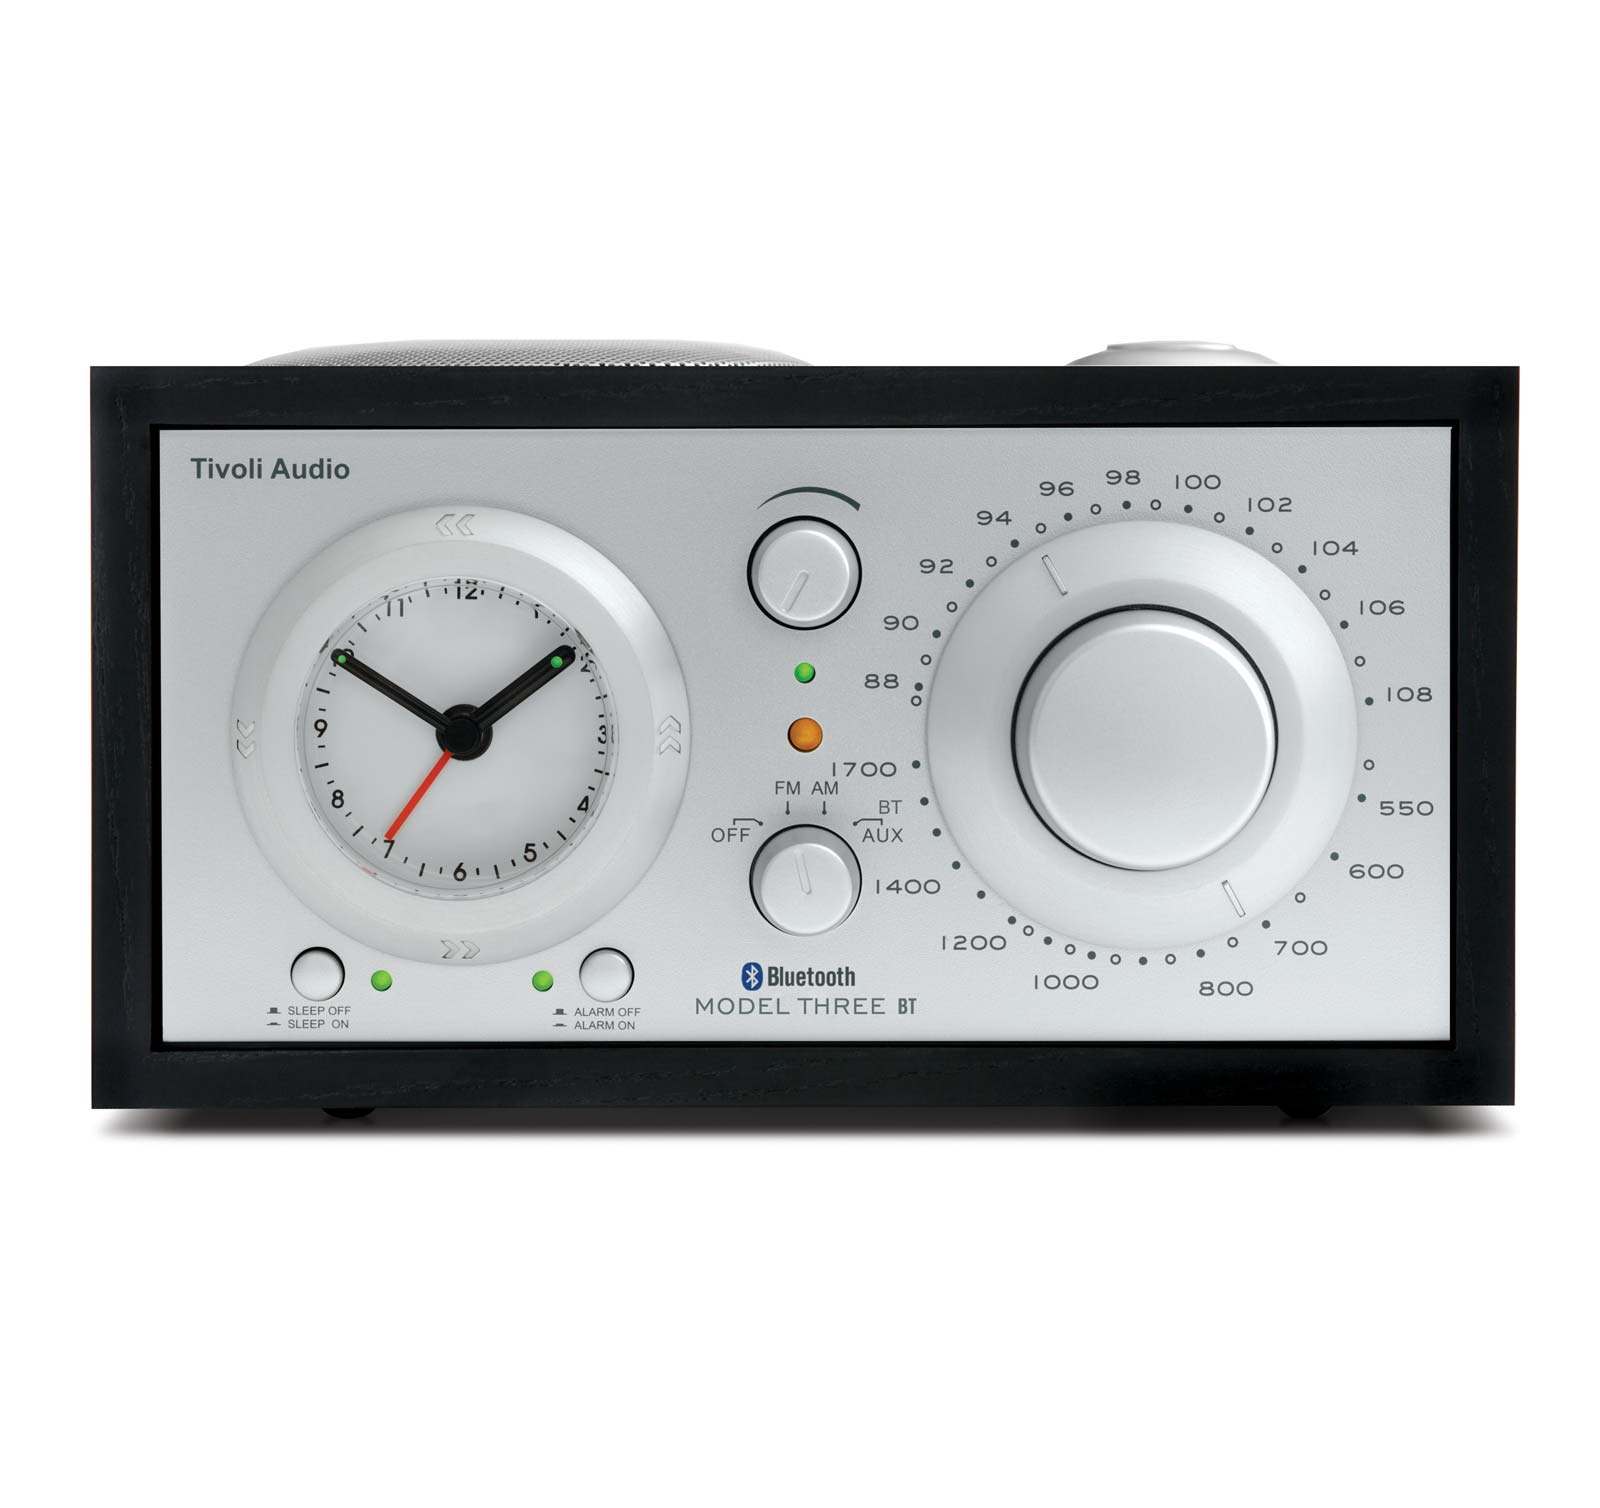 Tivoli Audio Model Three BT Black Silver AM FM Clock Radio with Bluetooth by Tivoli